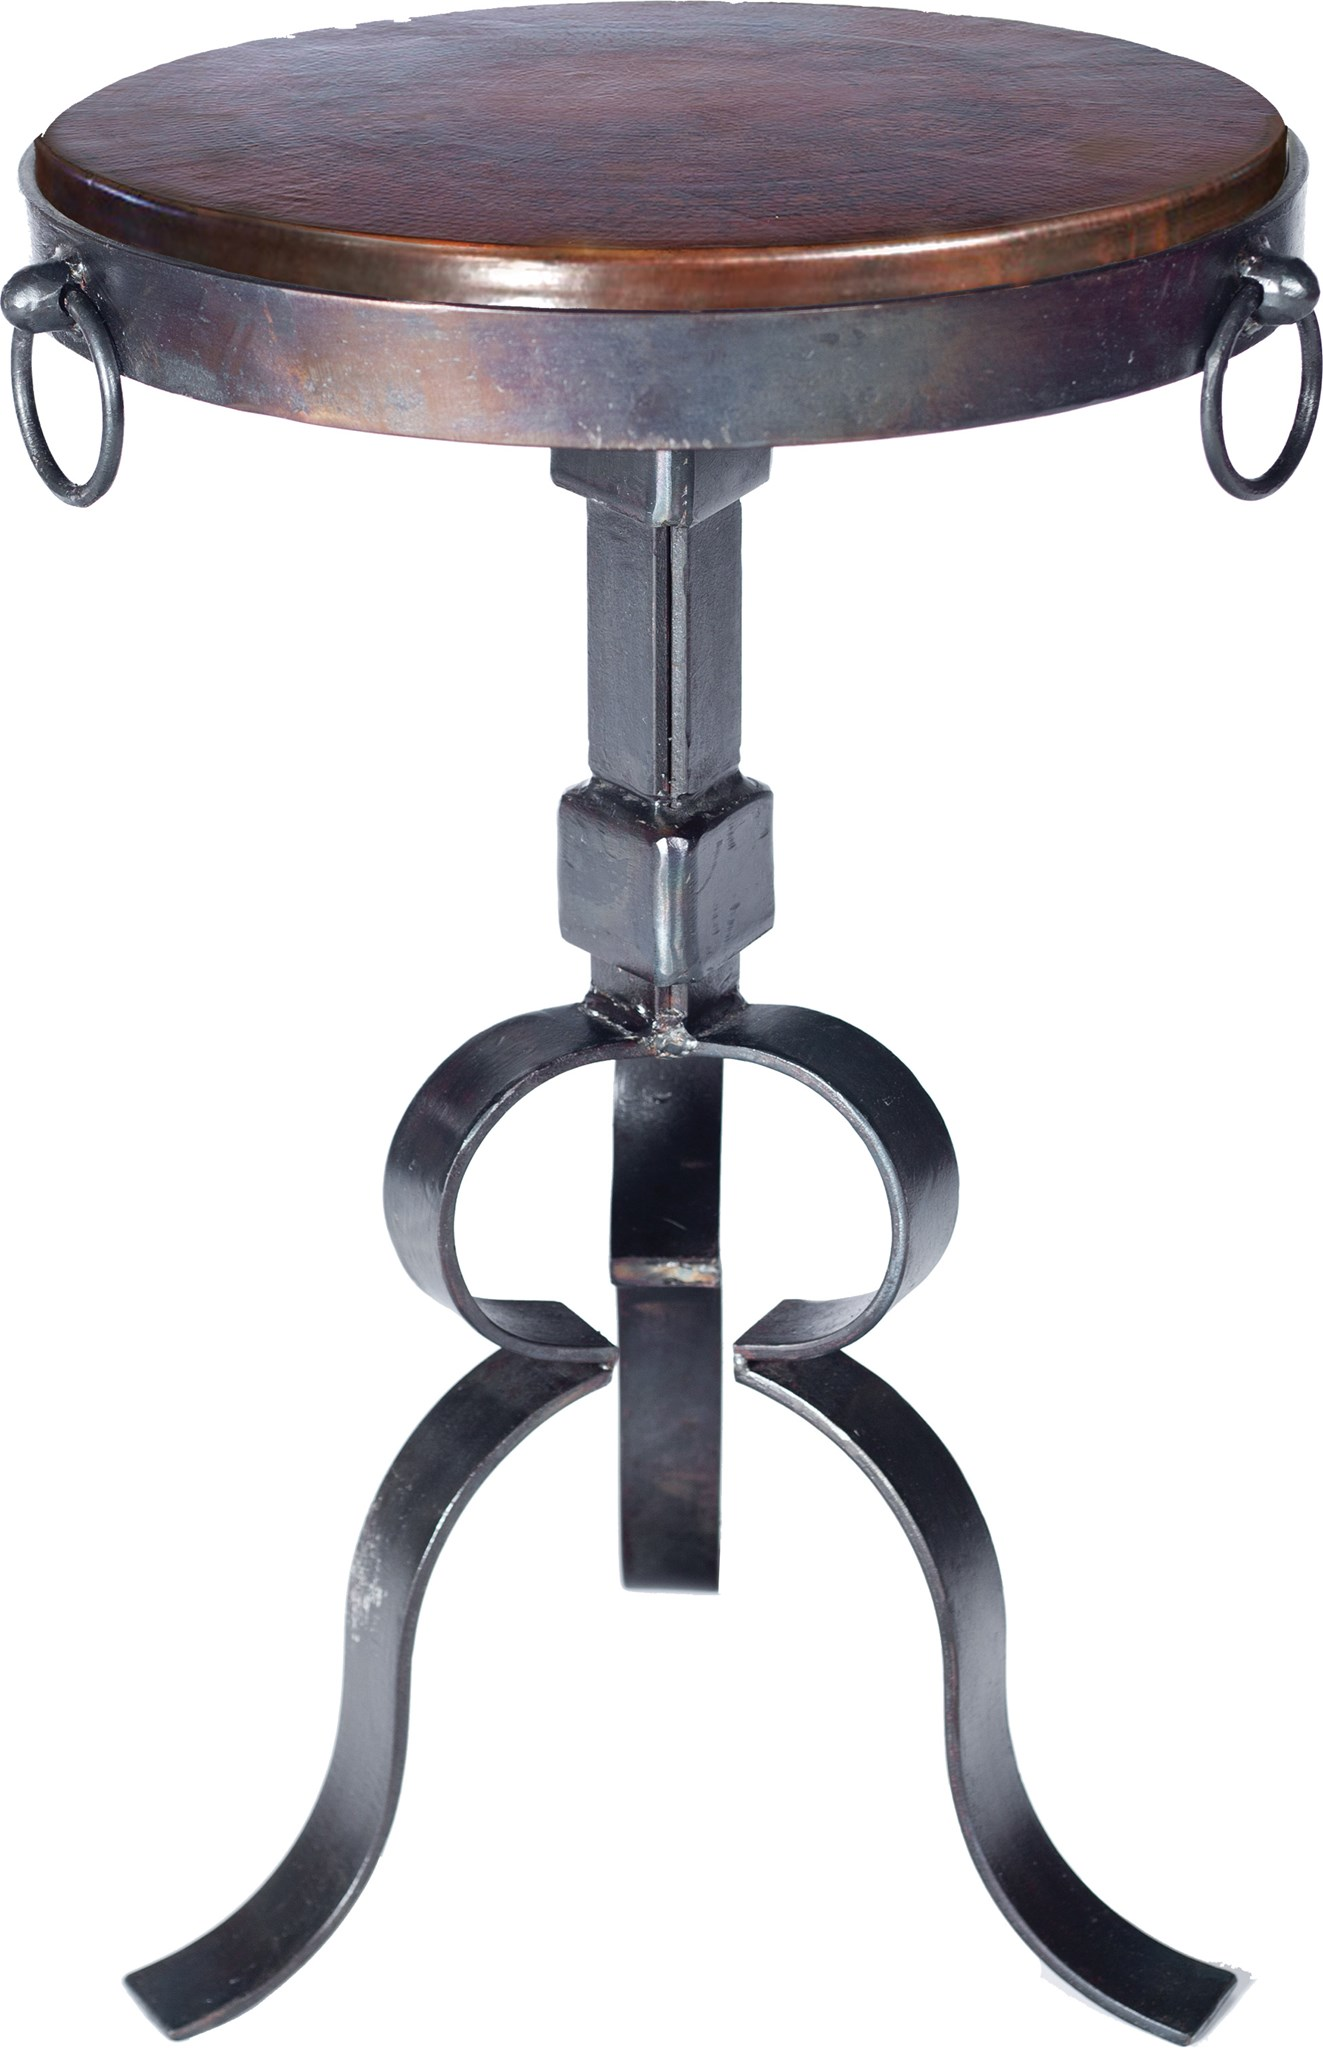 Round Iron Accent Table With Dark Brown Hammered Copper Top - Copper top accent table